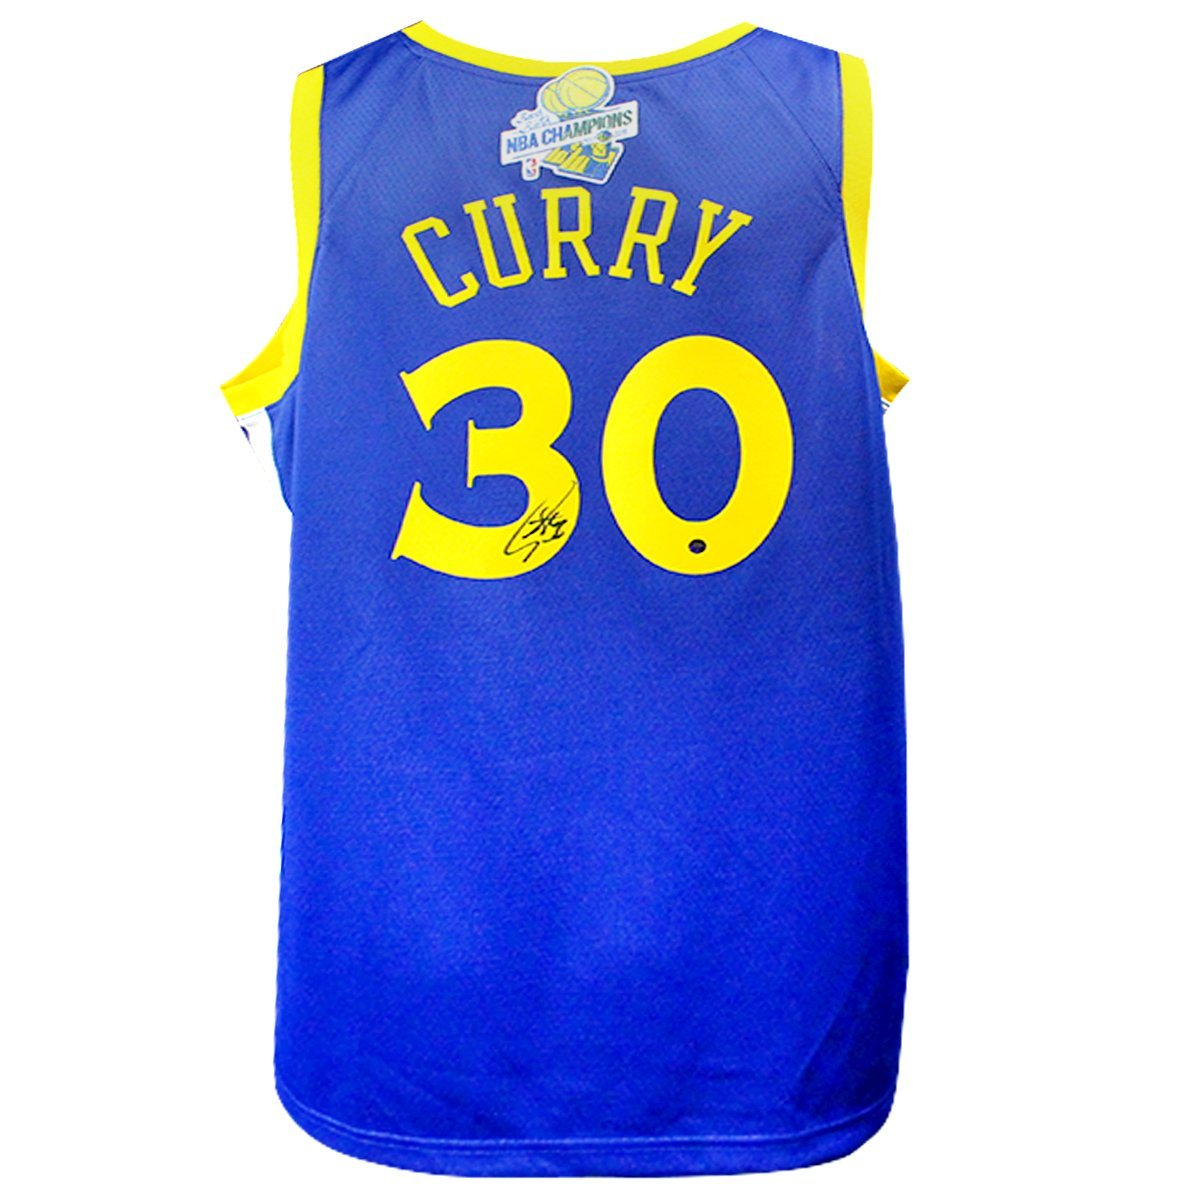 cheap for discount 39e0c 9072d STEPHEN CURRY SIGNED GOLDEN STATE WARRIORS NIKE BLUE SWINGMAN JERSEY WITH  2017-18 BACK TO BACK CHAMPIONS PATCH